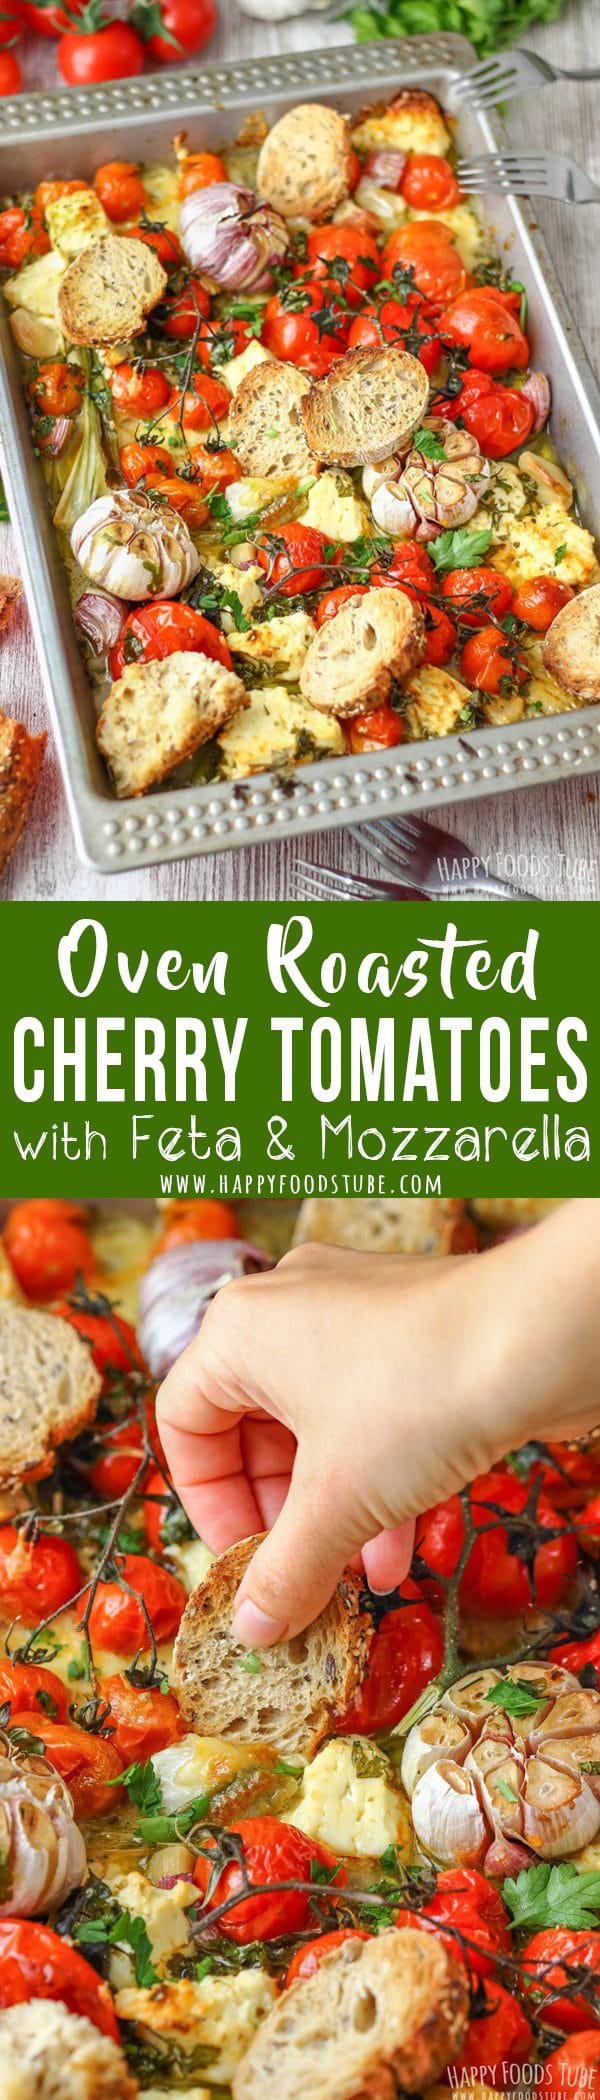 Oven Roasted Cherry Tomatoes with Feta and Mozzarella Collage Picture